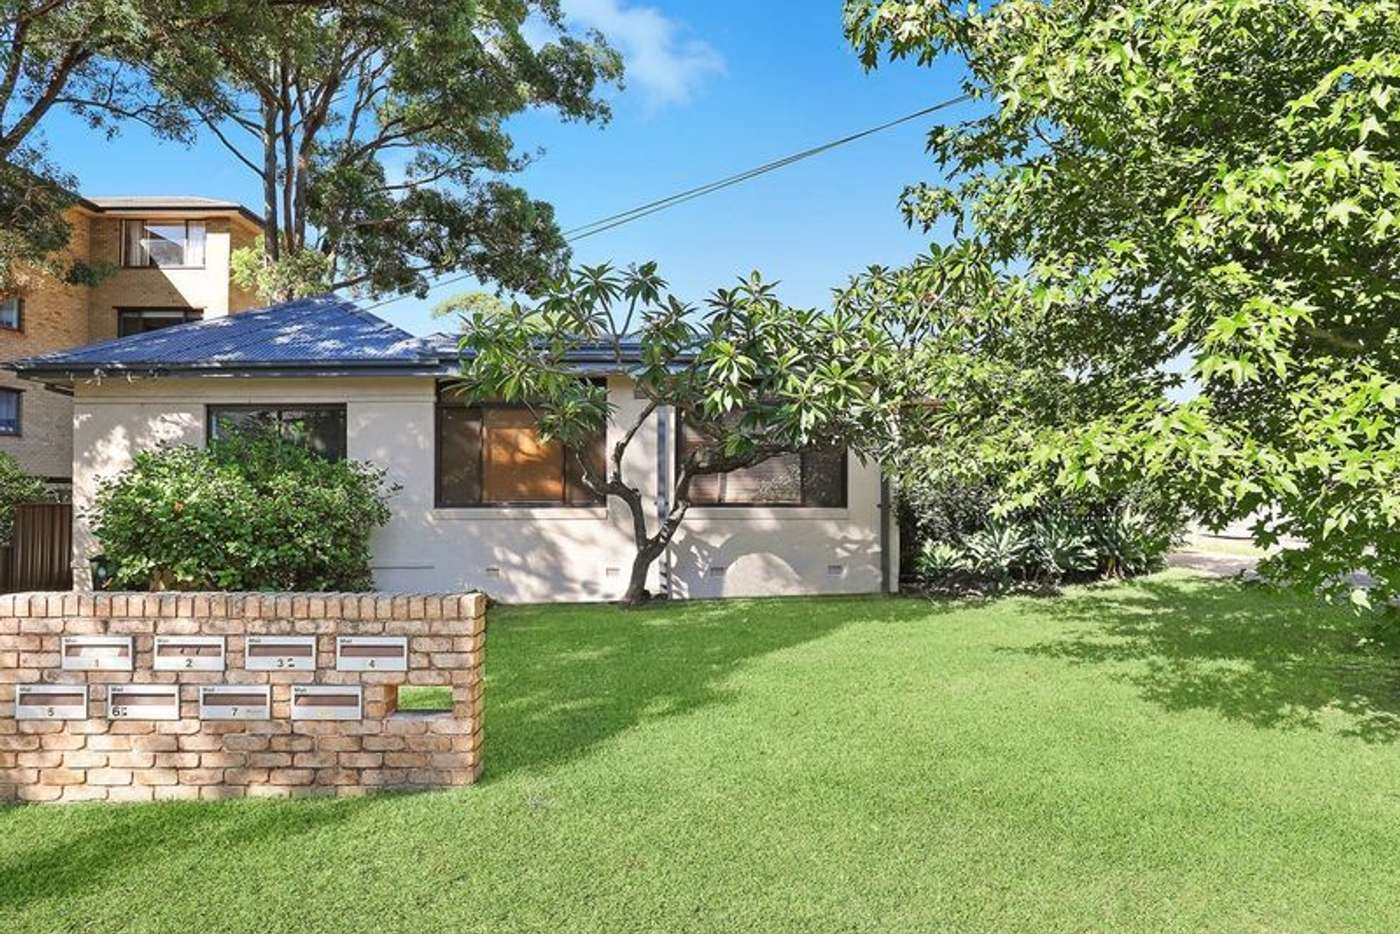 Main view of Homely apartment listing, 2/12 Caronia Road, Cronulla NSW 2230